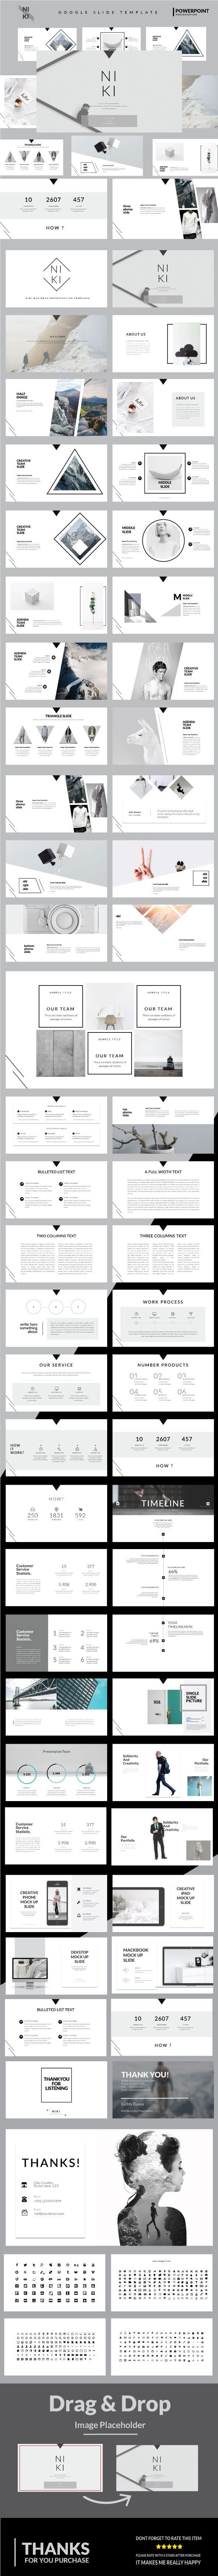 145 best Power Point Backgrounds images on Pinterest | Page layout ...